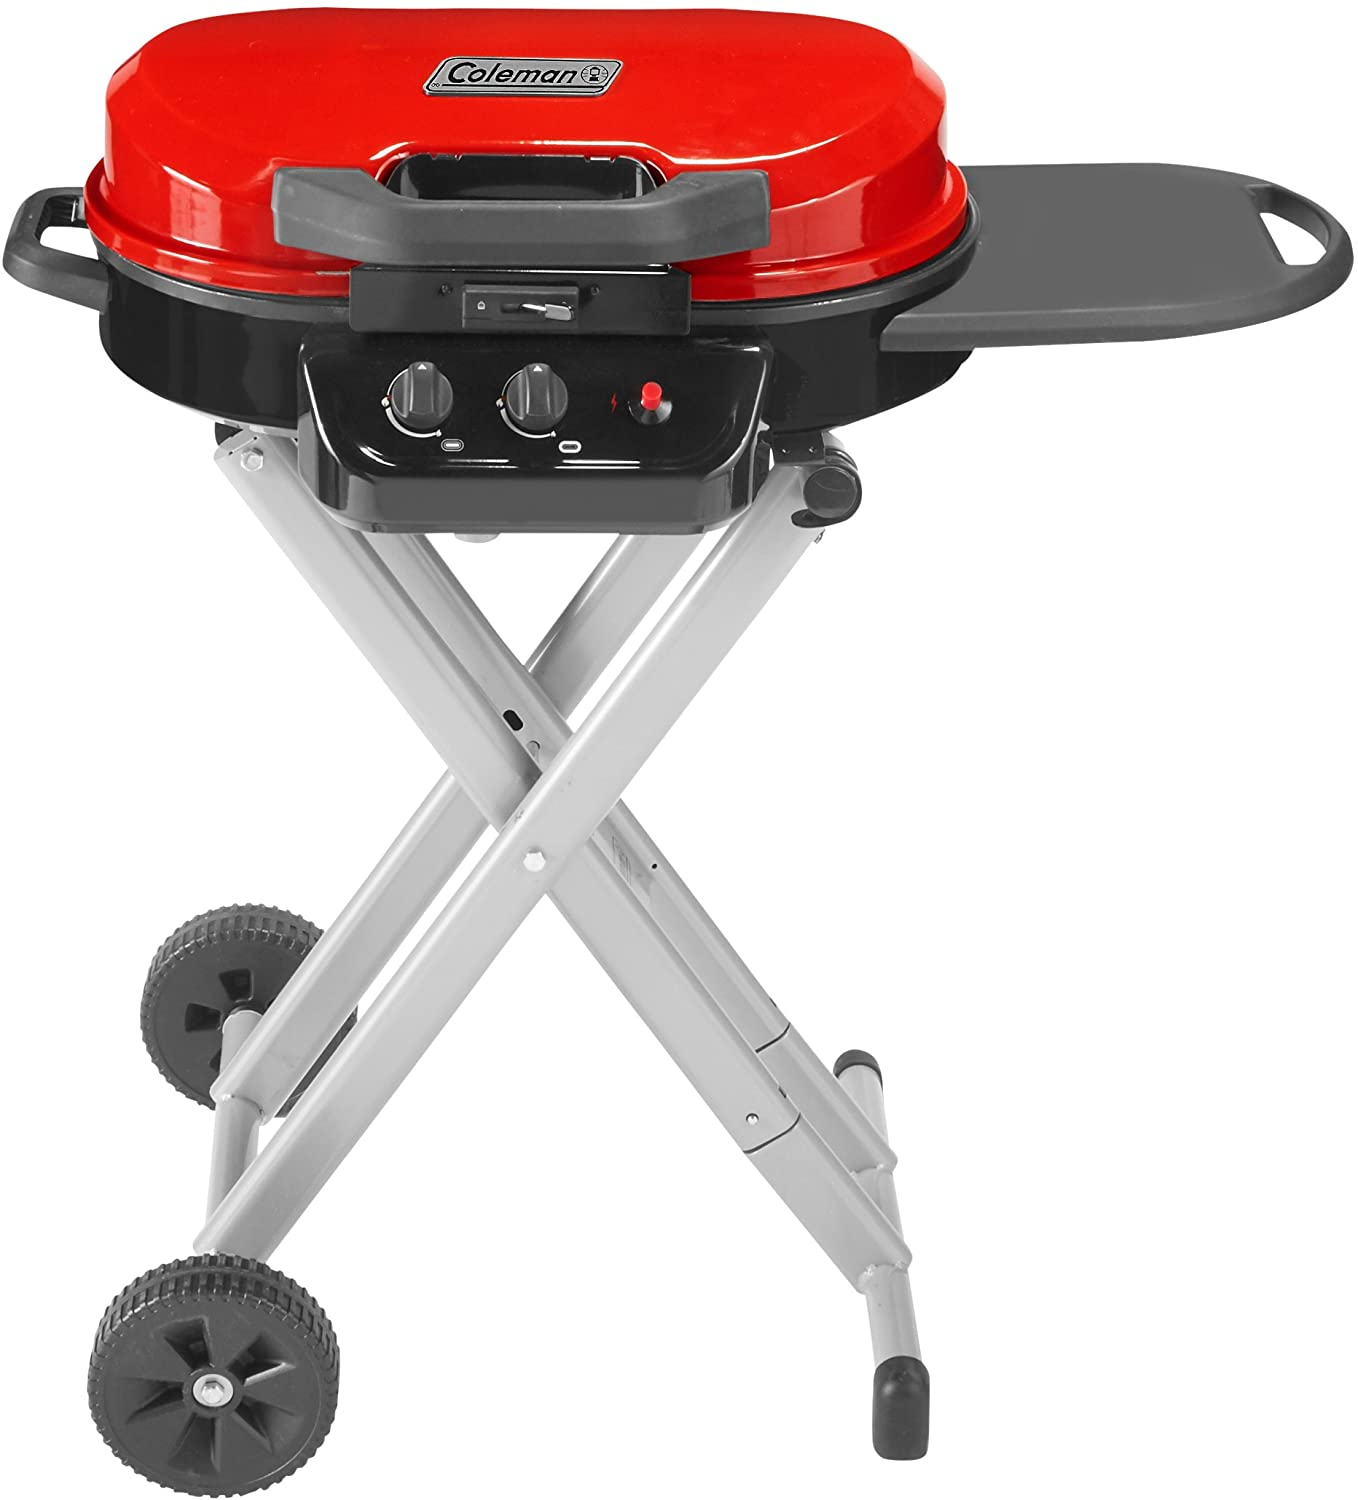 3. Portable Gas Grill